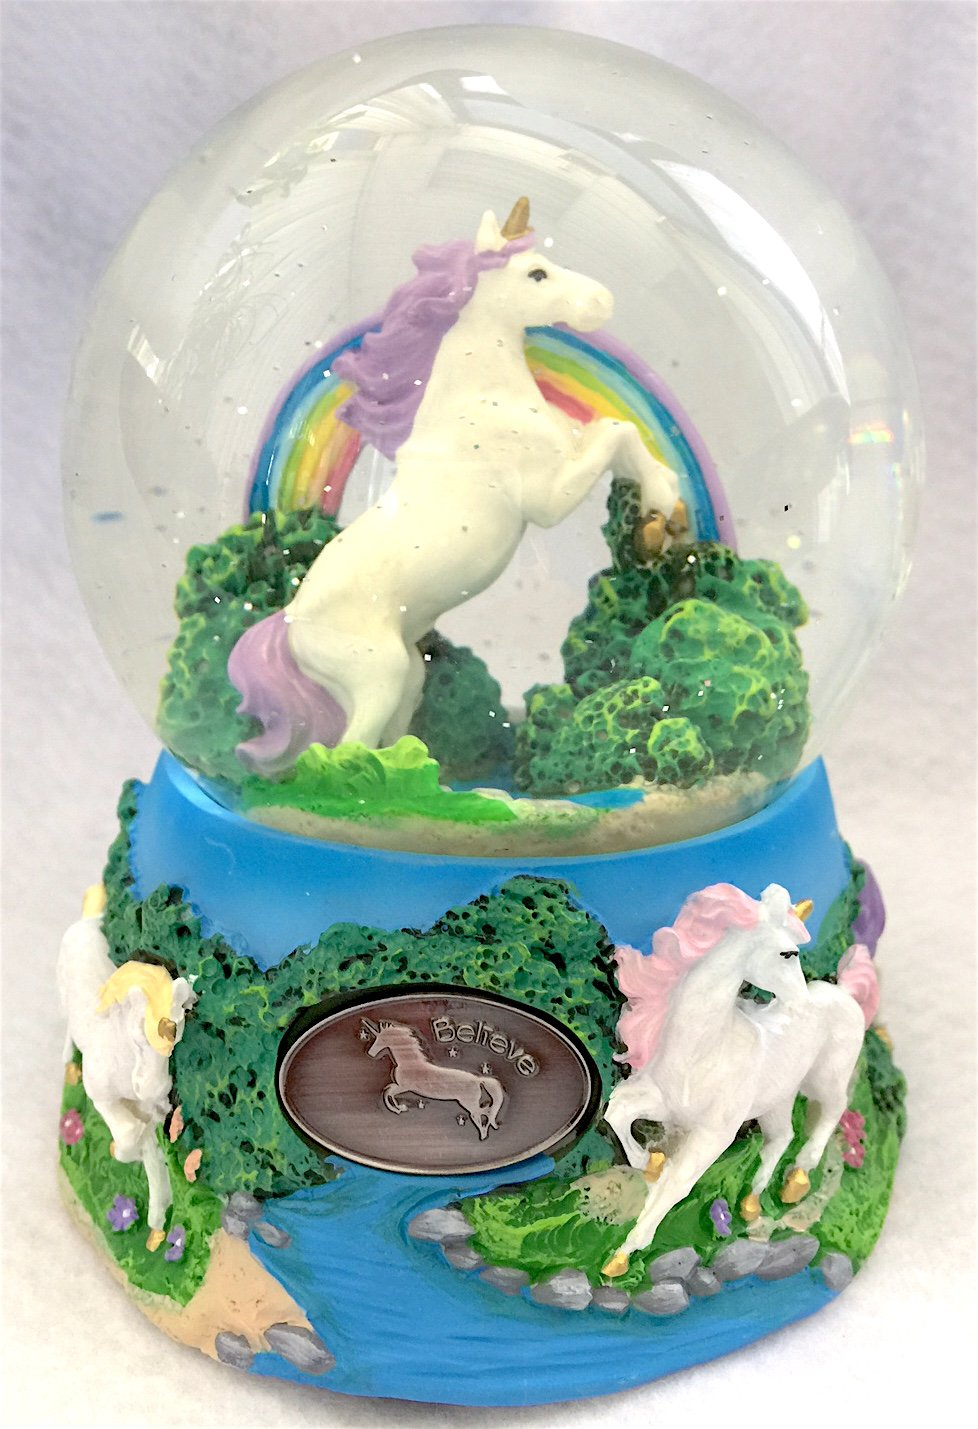 Unicorn Over the Rainbow Enchanted Fantasy Musical Glitterdome 100mm Snow Globe by cado